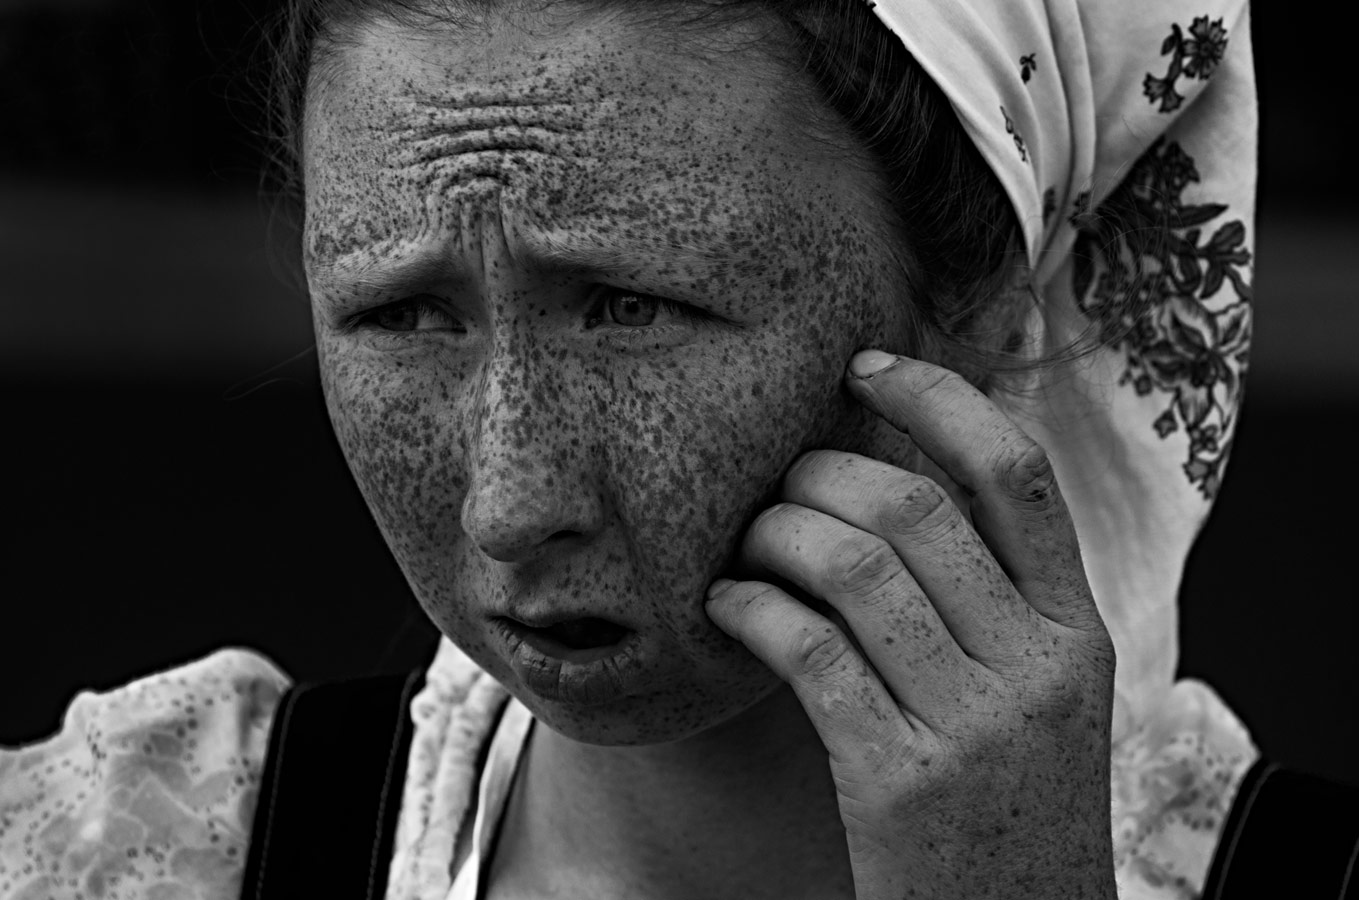 Eve, © Vitaly Podgurchenko, 1st Place, Russian Civilization International Photo Contest